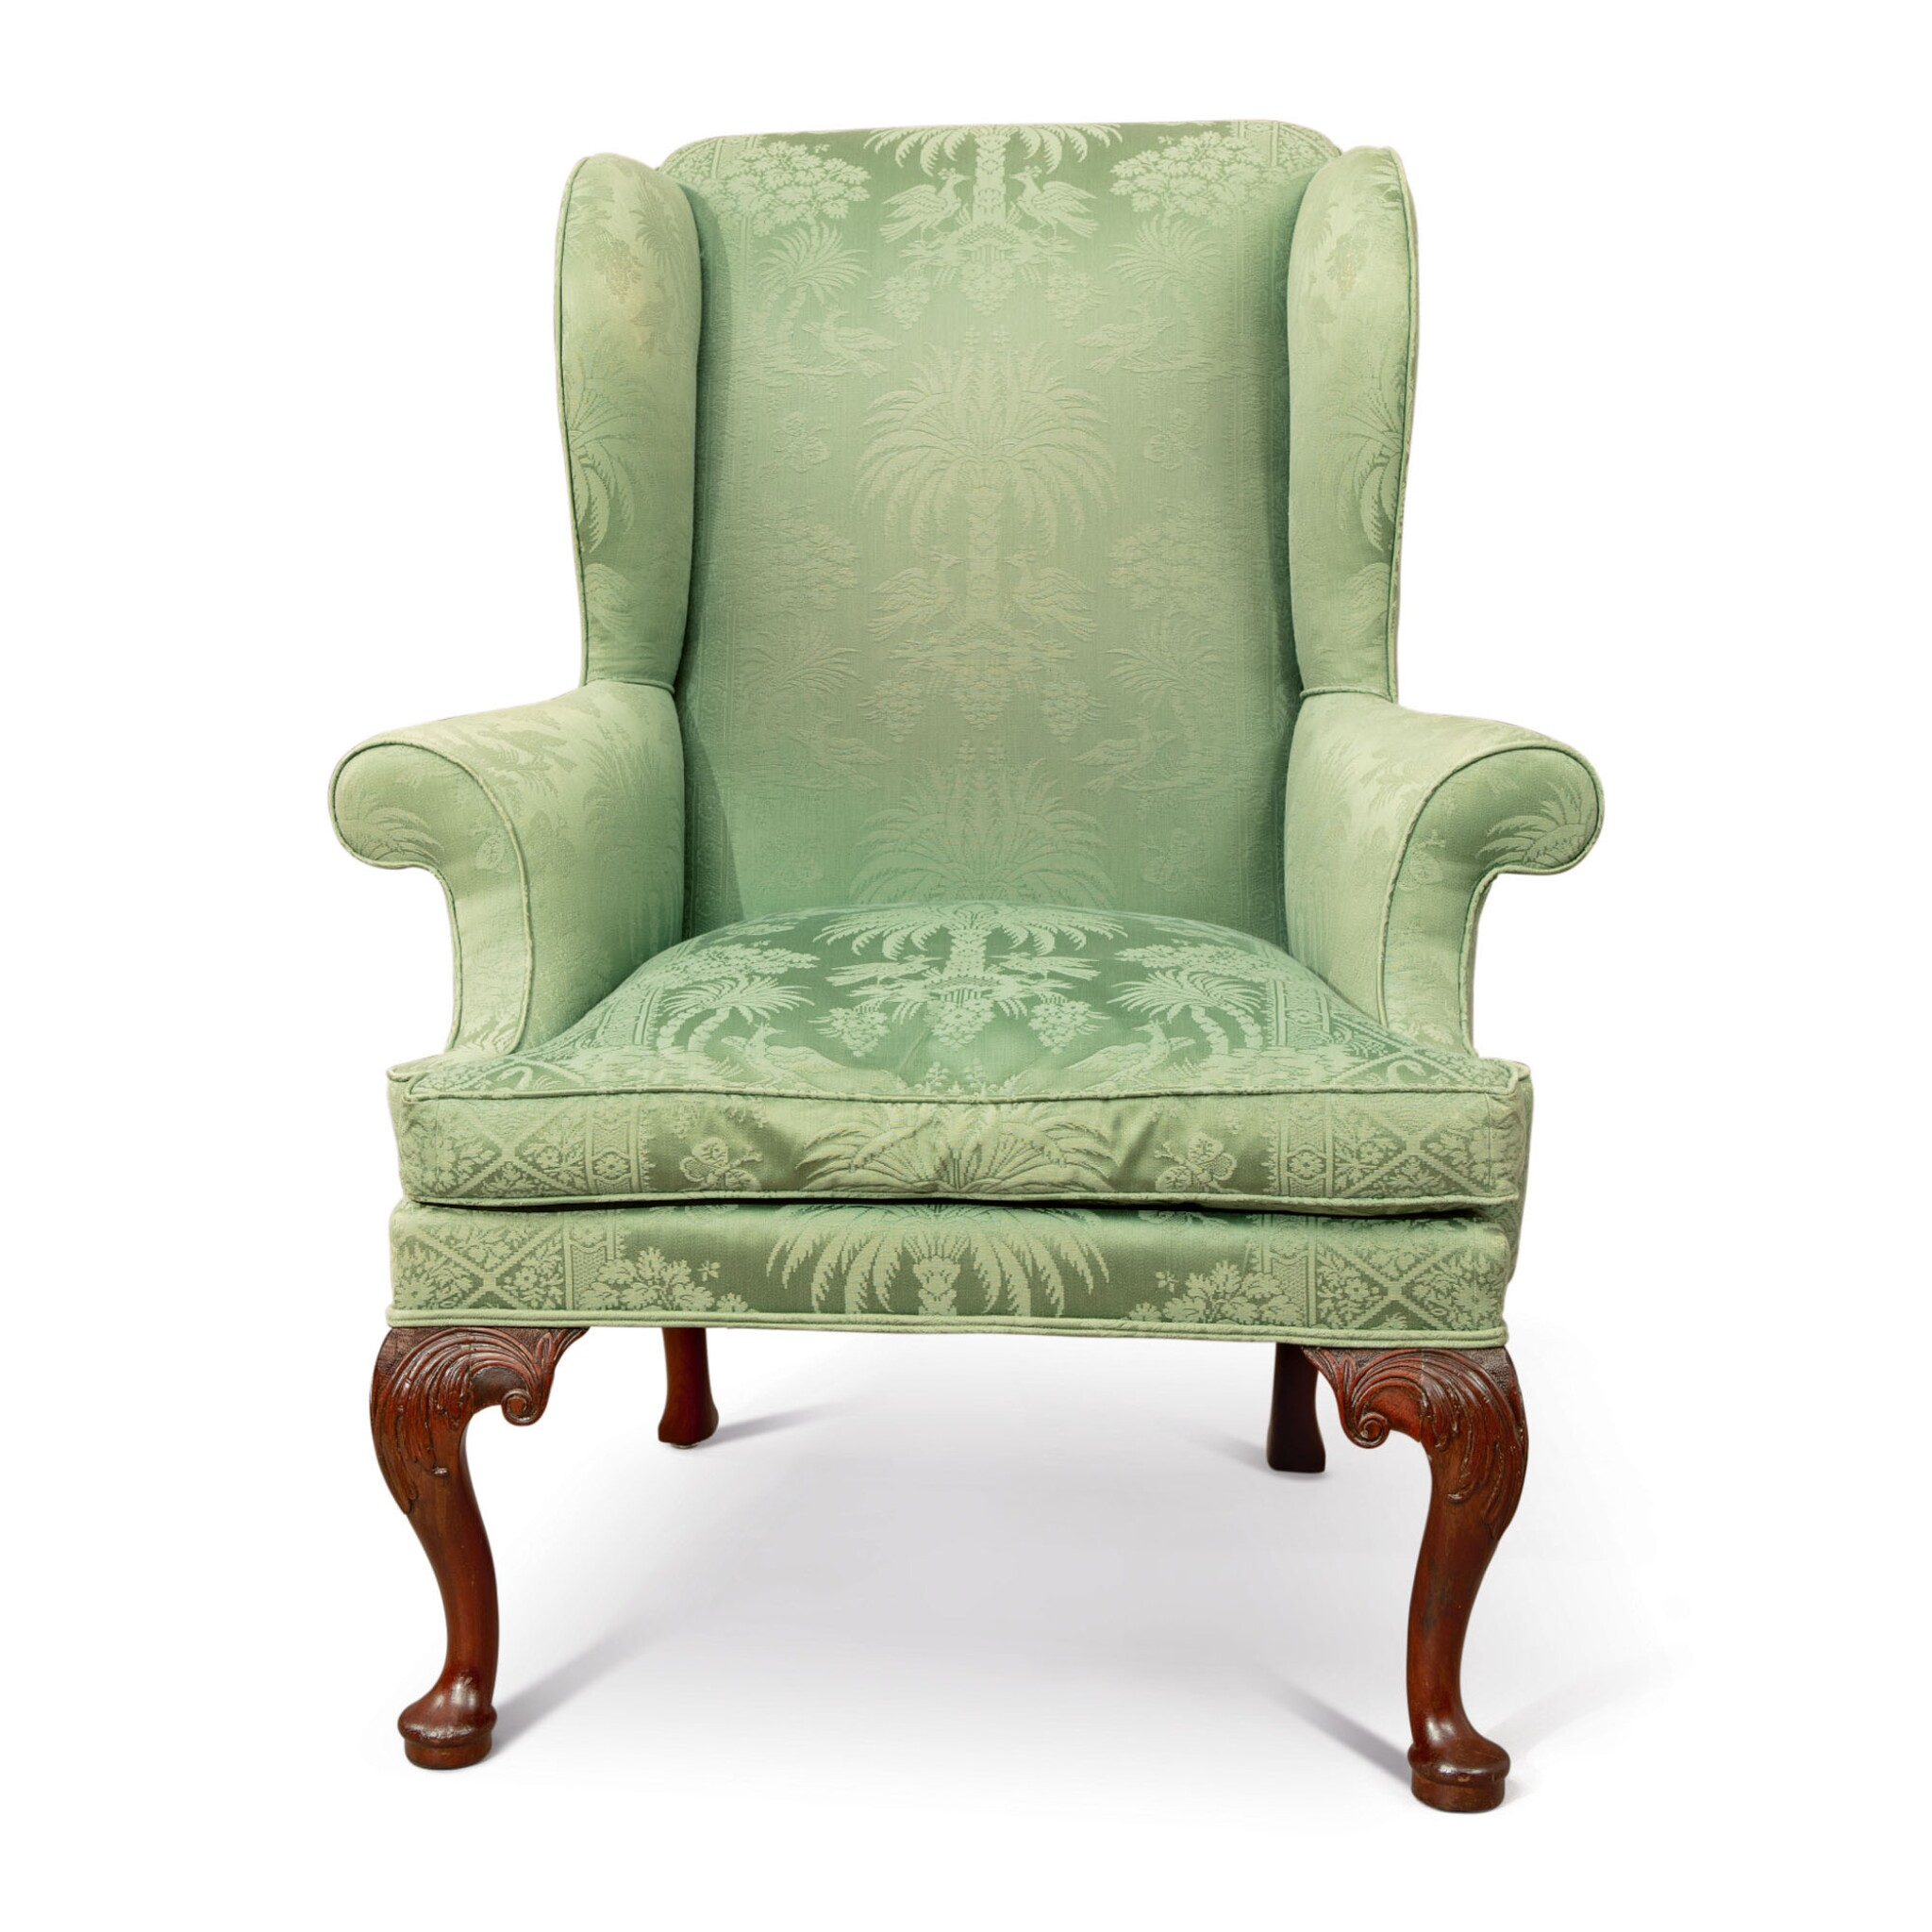 View full screen - View 1 of Lot 502. A GEORGE II WING ARMCHAIR, PROBABLY 18TH CENTURY.